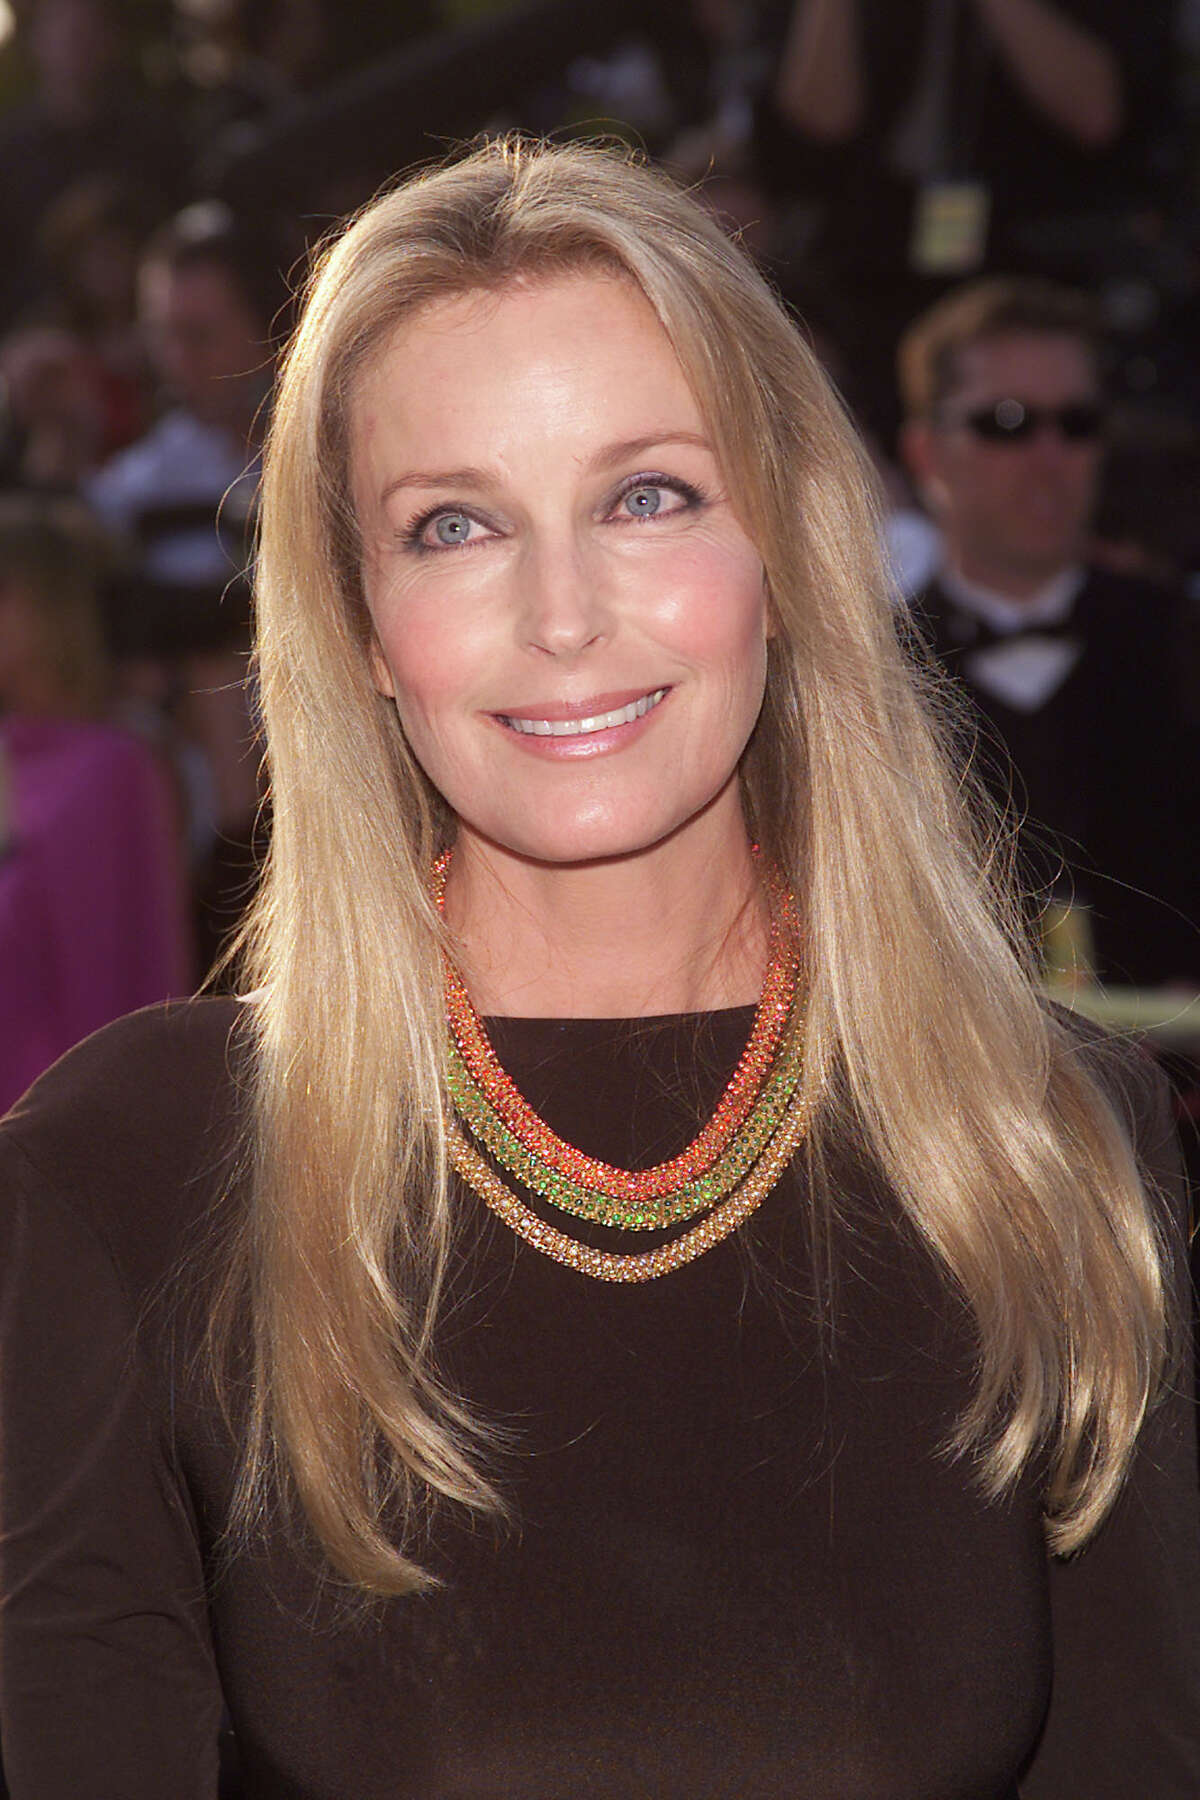 Bo Derek arrives at the Vanity Fair Oscar party at Morton's Restaurant in Los Angeles Sunday night, March 25, 2001. Photo by Evan Agostini/Getty Images